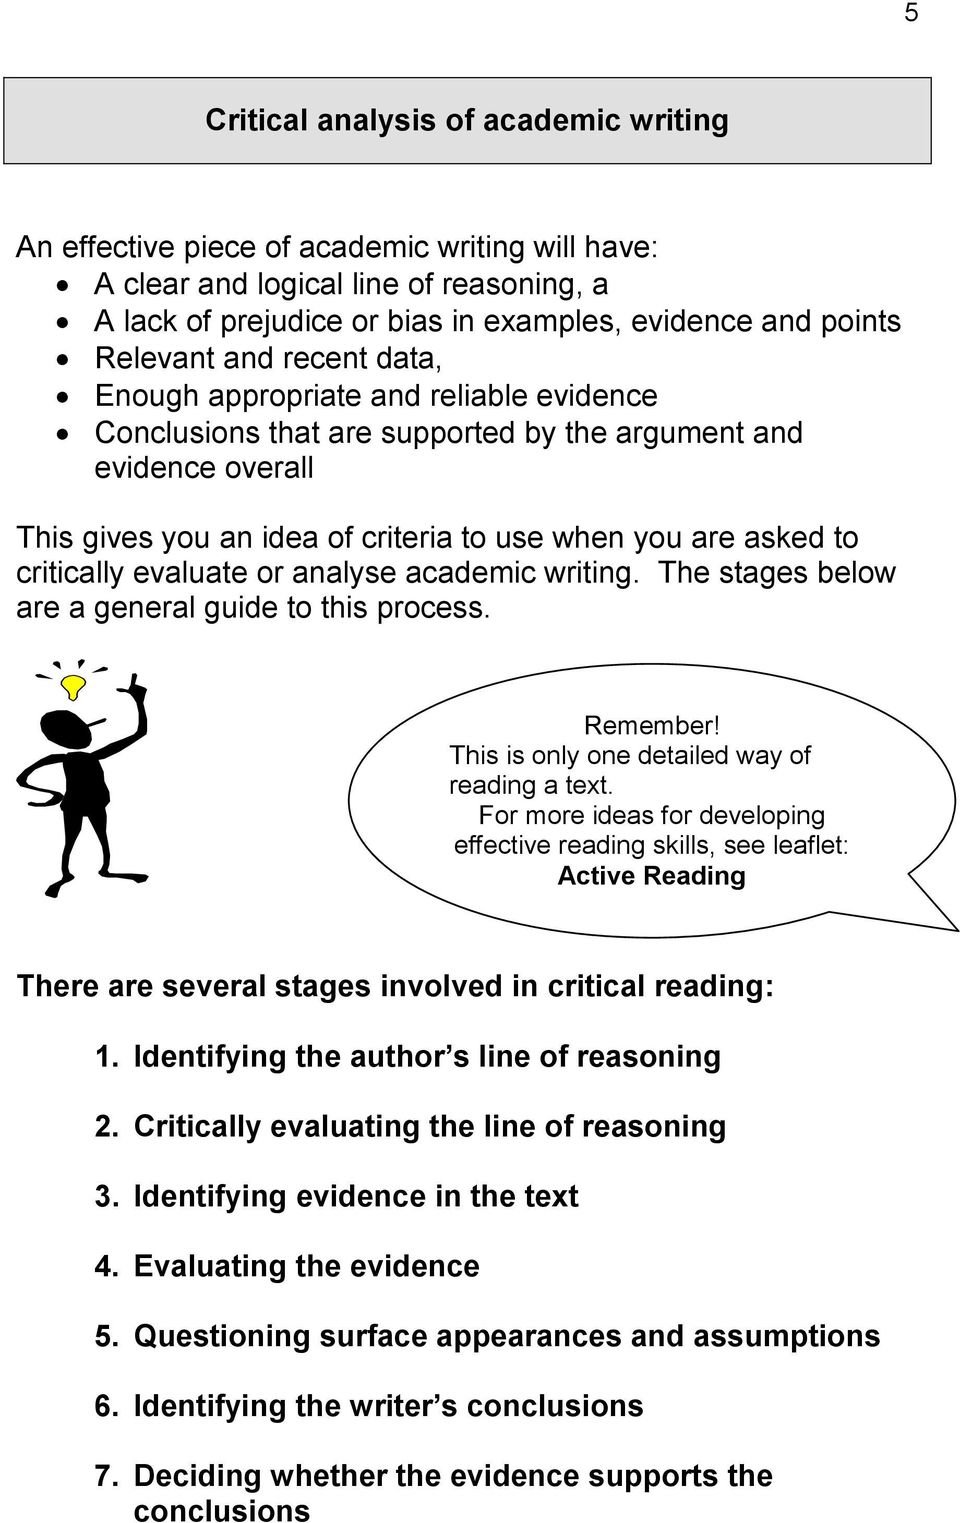 critically evaluate or analyse academic writing. The stages below are a general guide to this process. Remember! This is only one detailed way of reading a text.